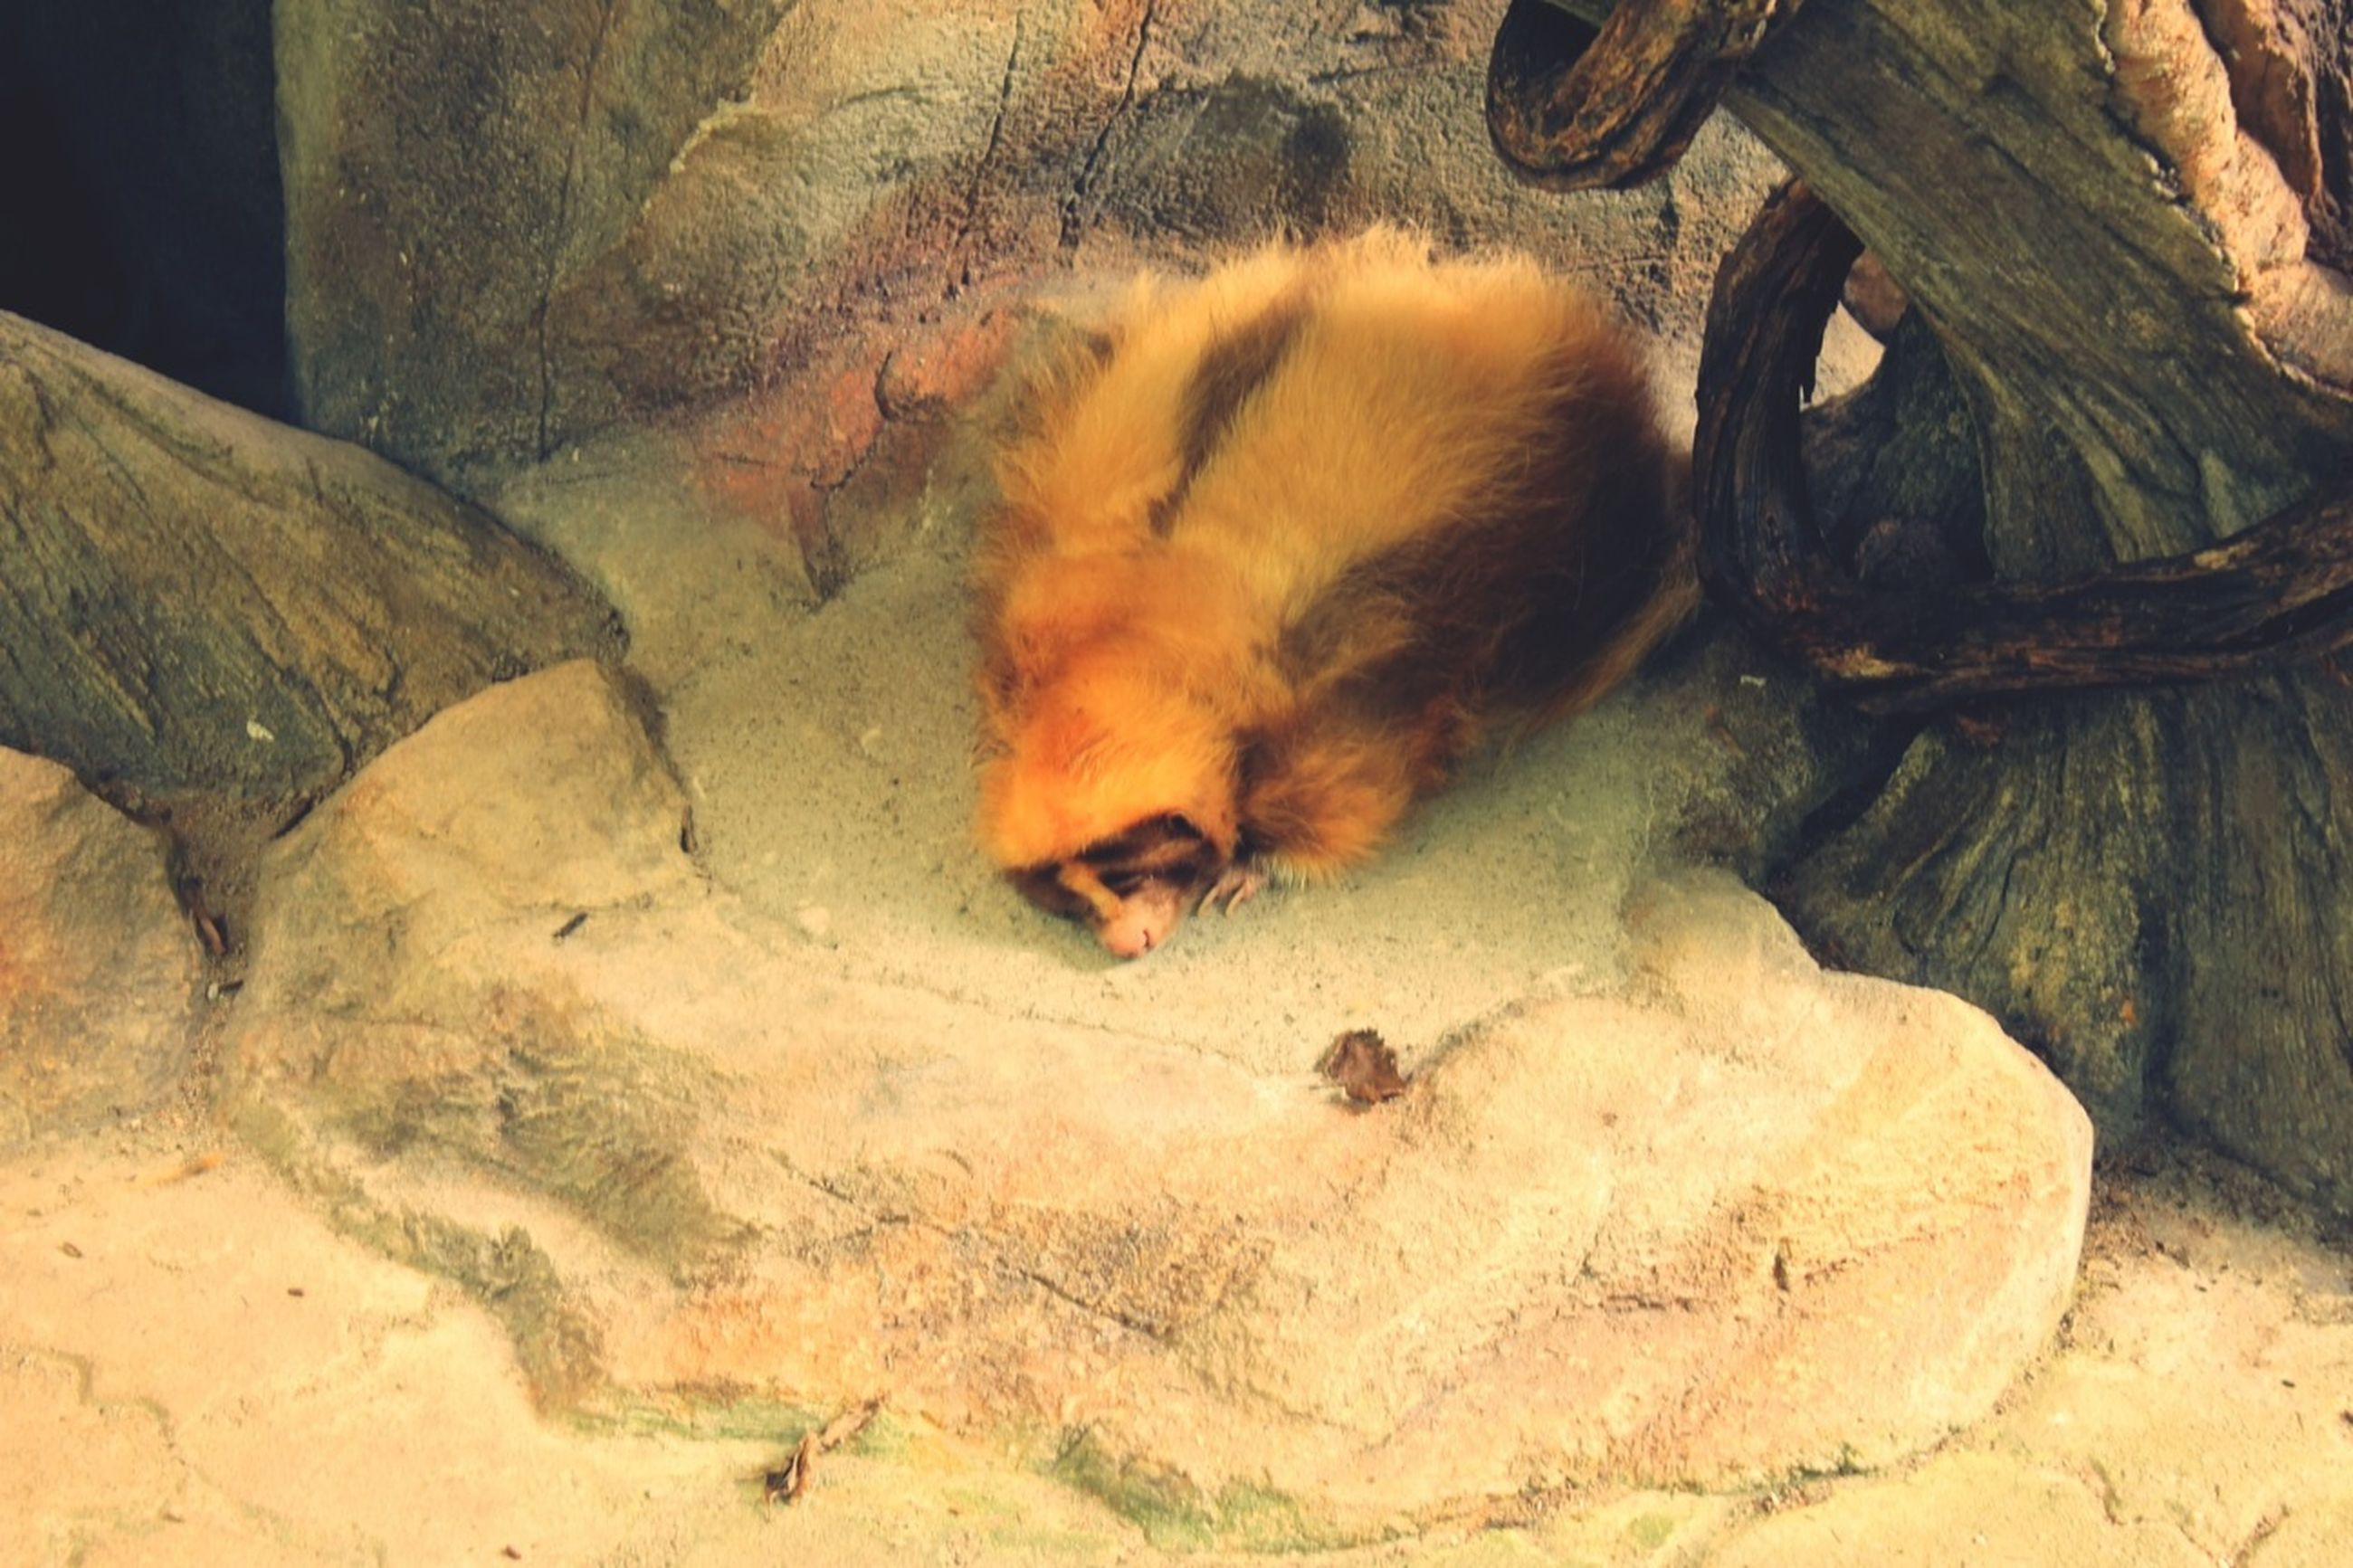 animal themes, mammal, one animal, animals in the wild, wildlife, sleeping, high angle view, domestic animals, relaxation, zoo, rock - object, resting, nature, sand, zoology, animals in captivity, no people, day, two animals, lying down